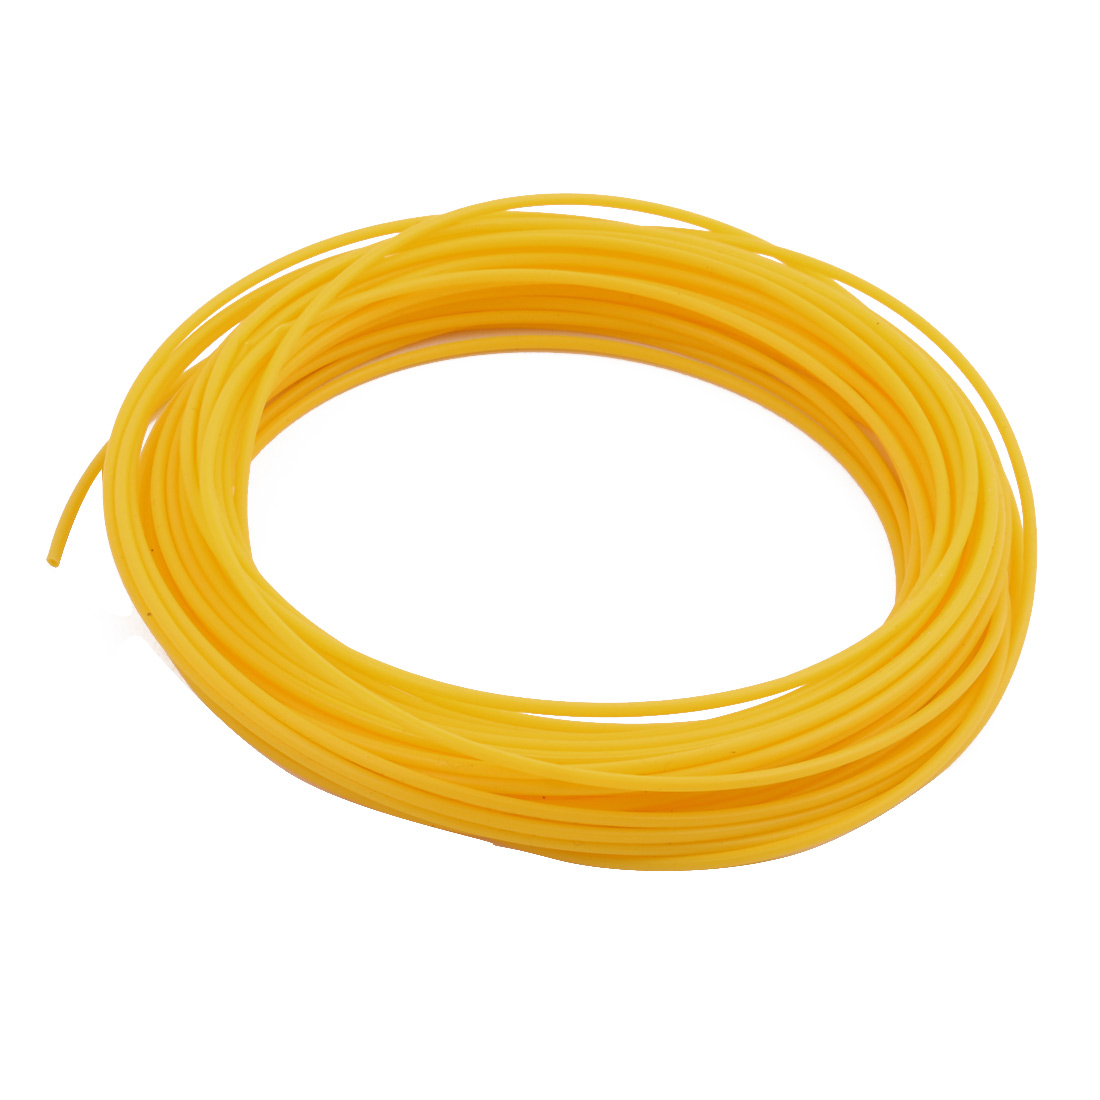 1.34mmx1.64mm PTFE Resistant High Temperature Yellow Tubing 10 Meters 32.8Ft